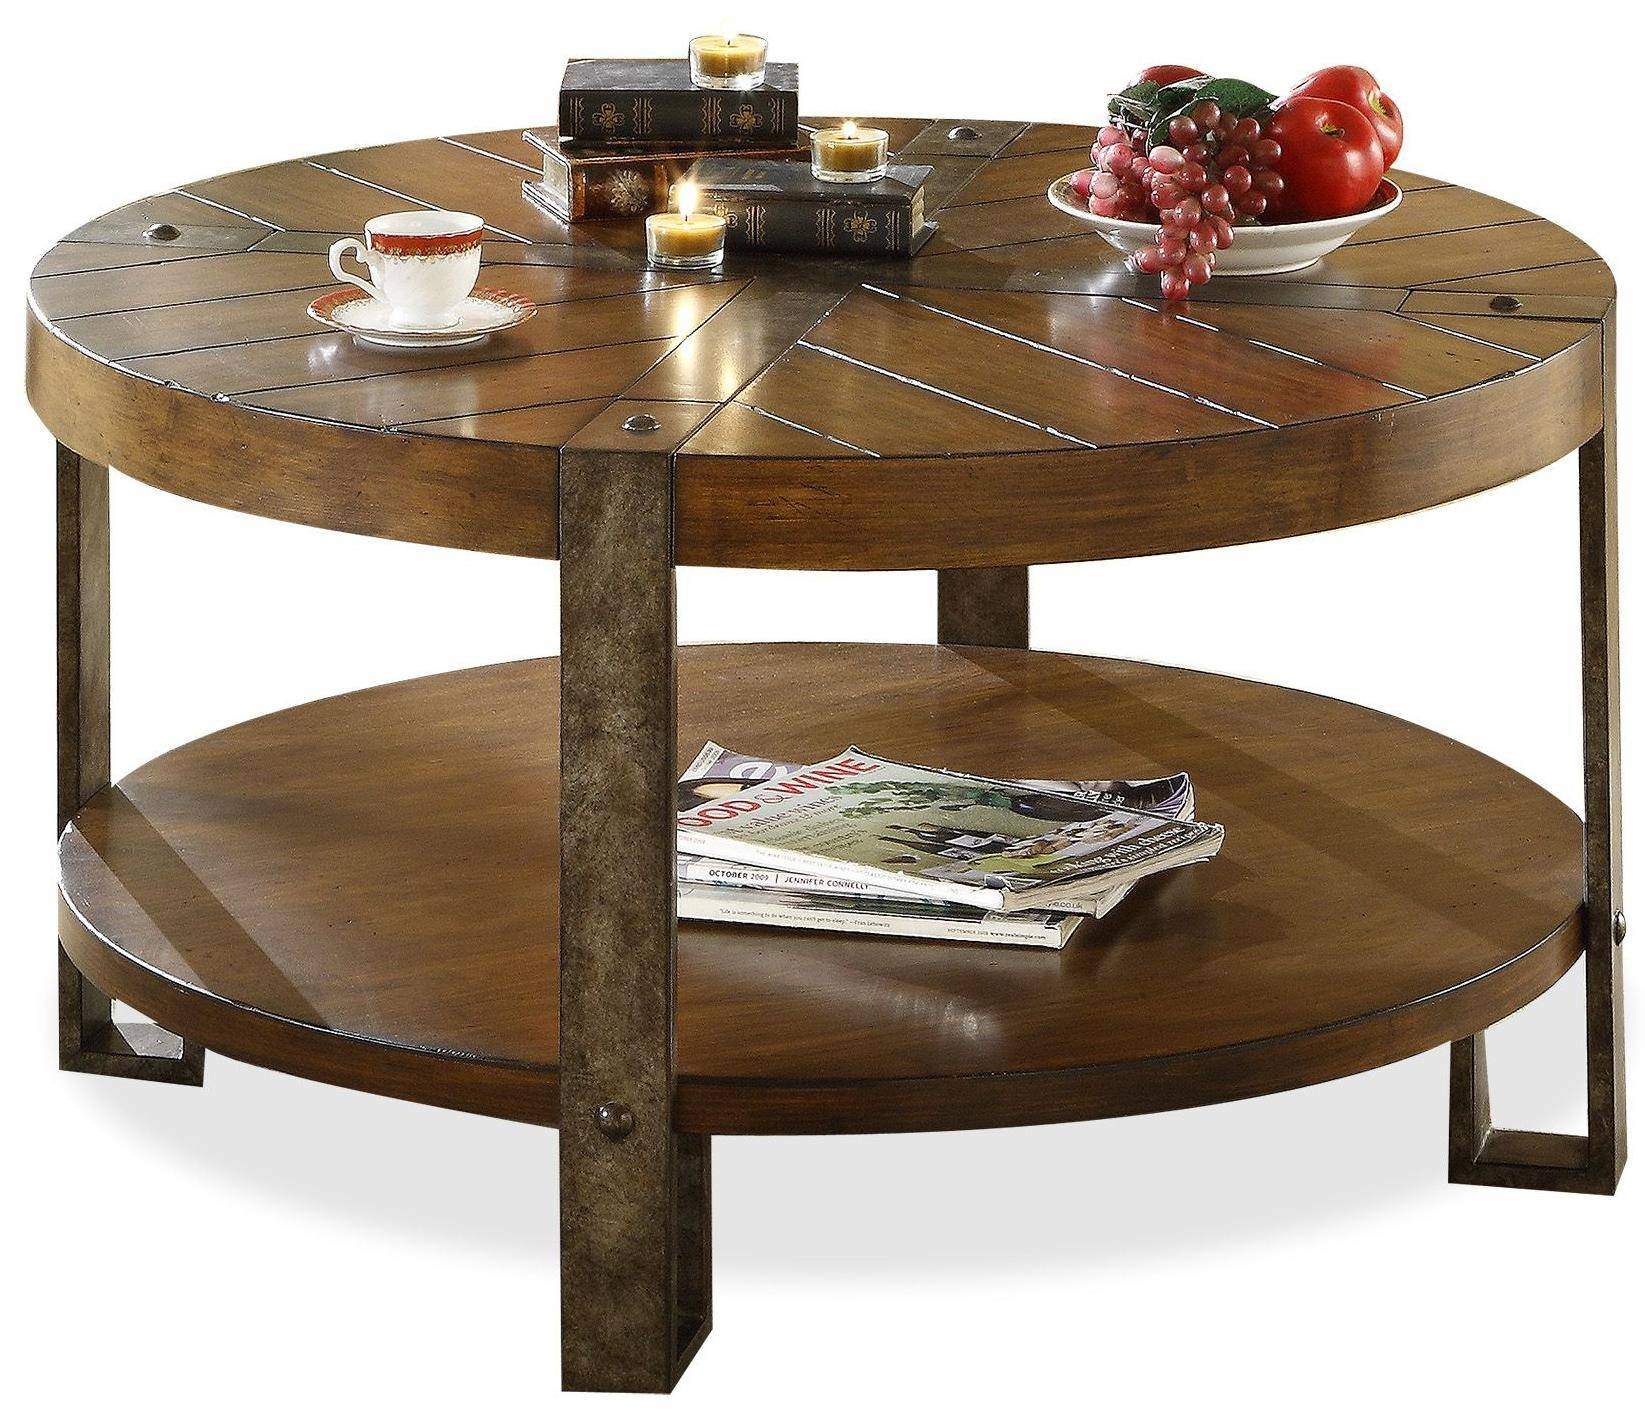 Riverside Furniture Sierra Round Wooden Coffee Table With Metal Intended For Circular Coffee Tables (View 27 of 30)